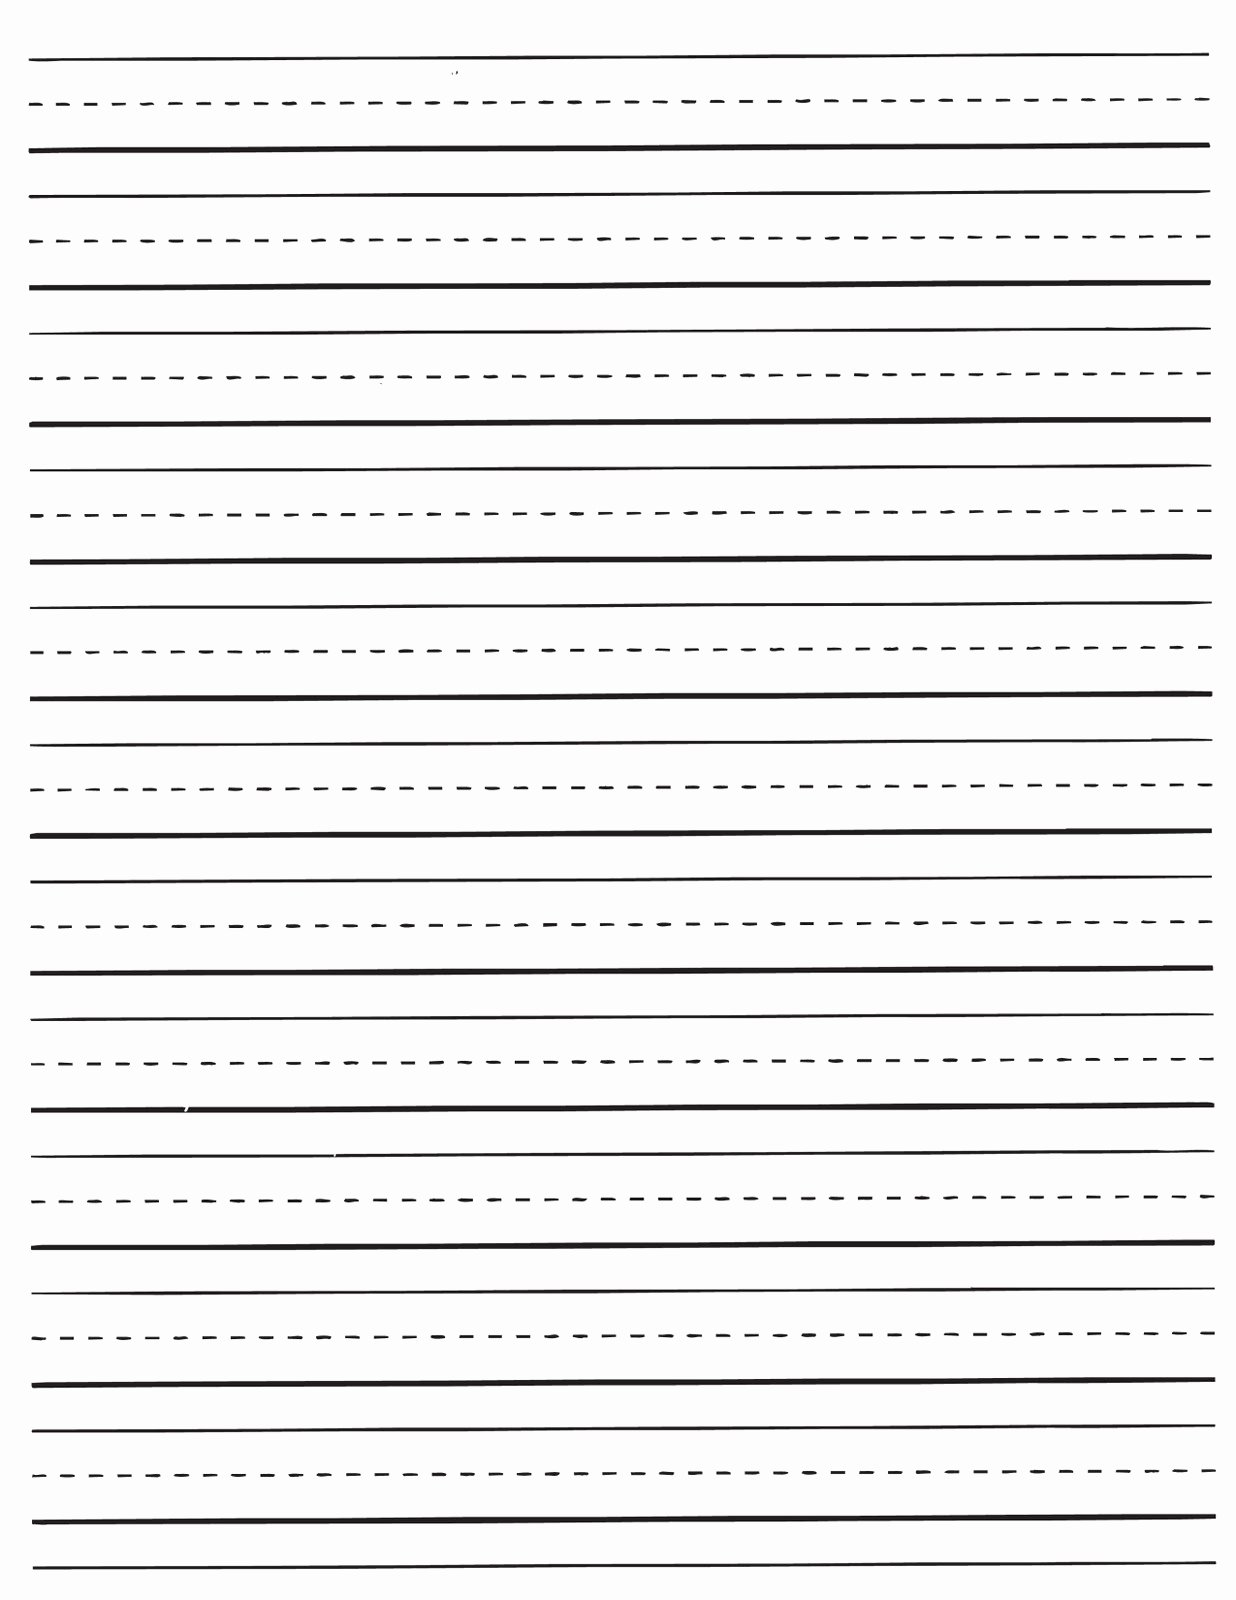 Lined Writing Paper for Kids Beautiful Free Printable Lined Handwriting Paper Printable Pages